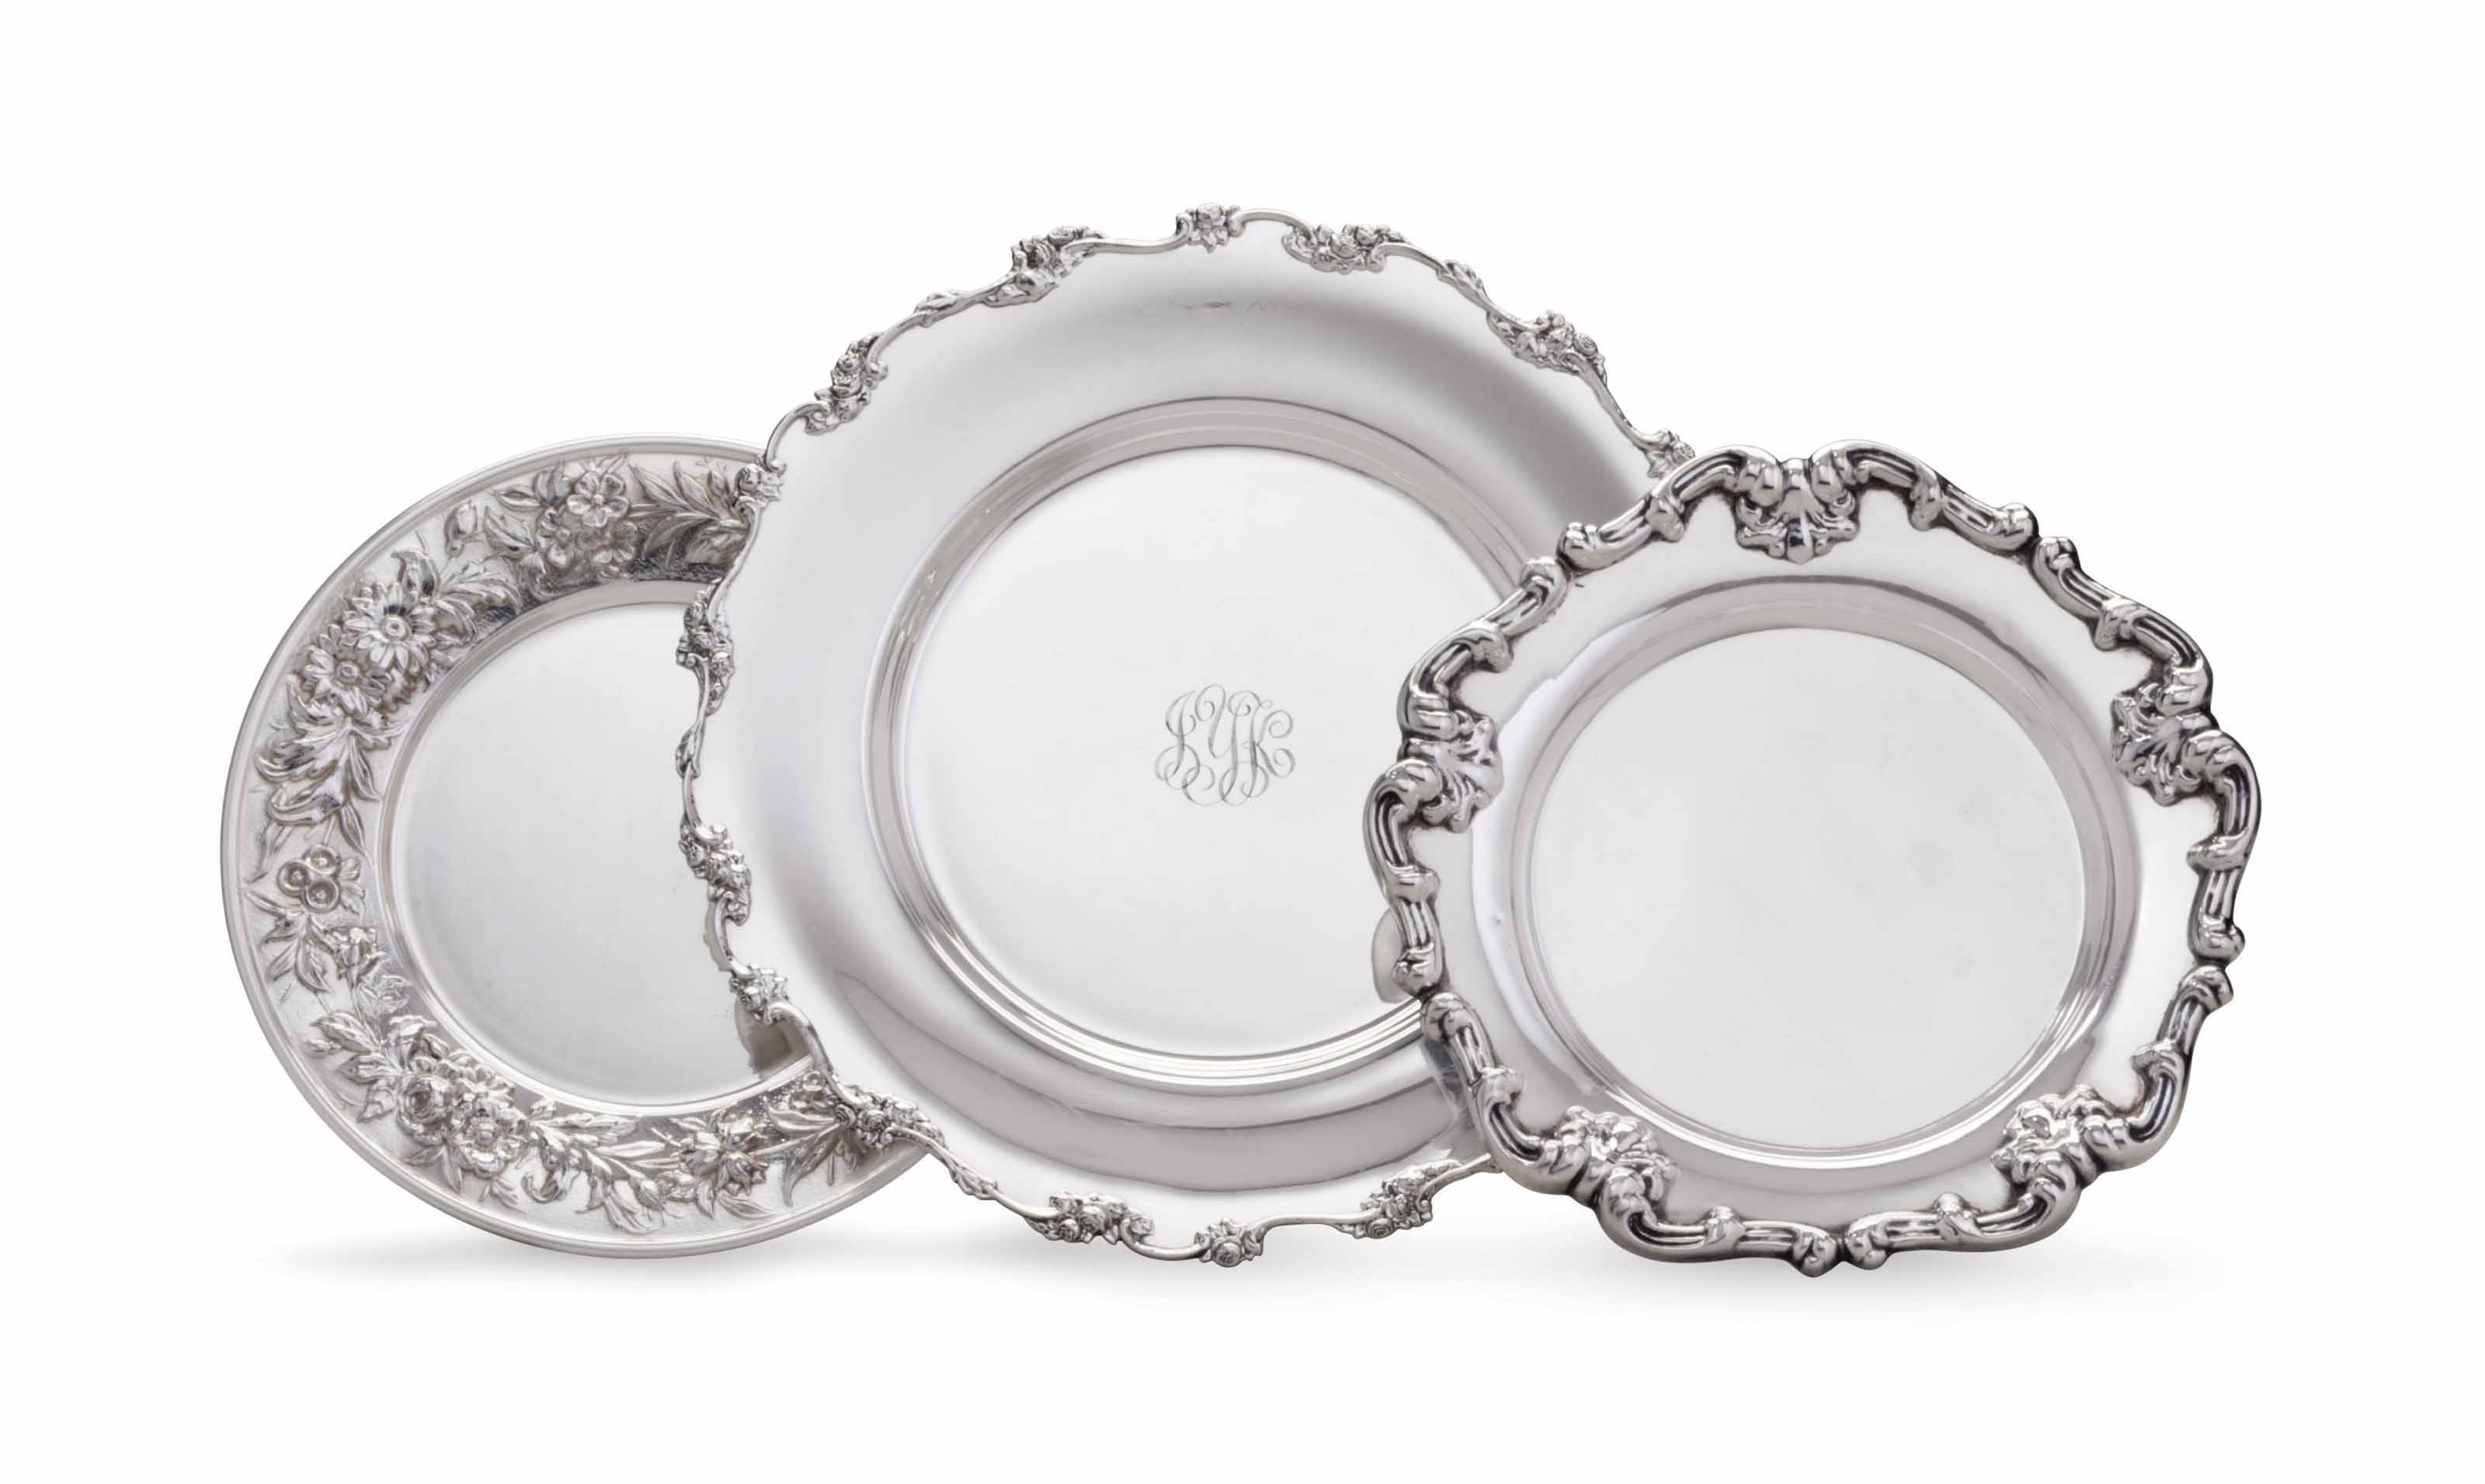 THREE SETS OF AMERICAN SILVER PLATES